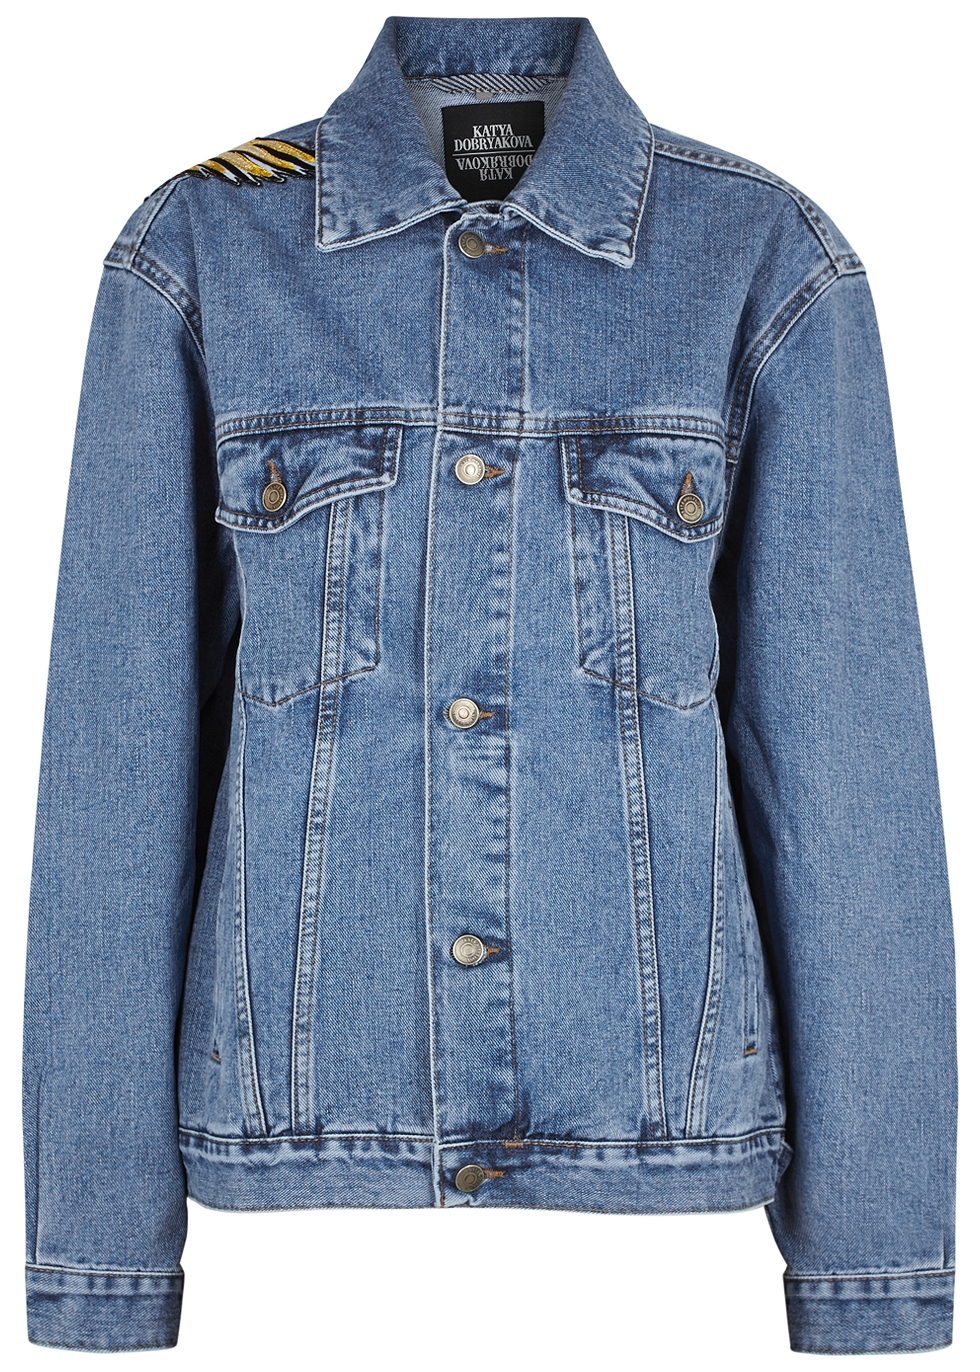 KATYA DOBRYAKOVA Cranes Oversized Denim Jacket